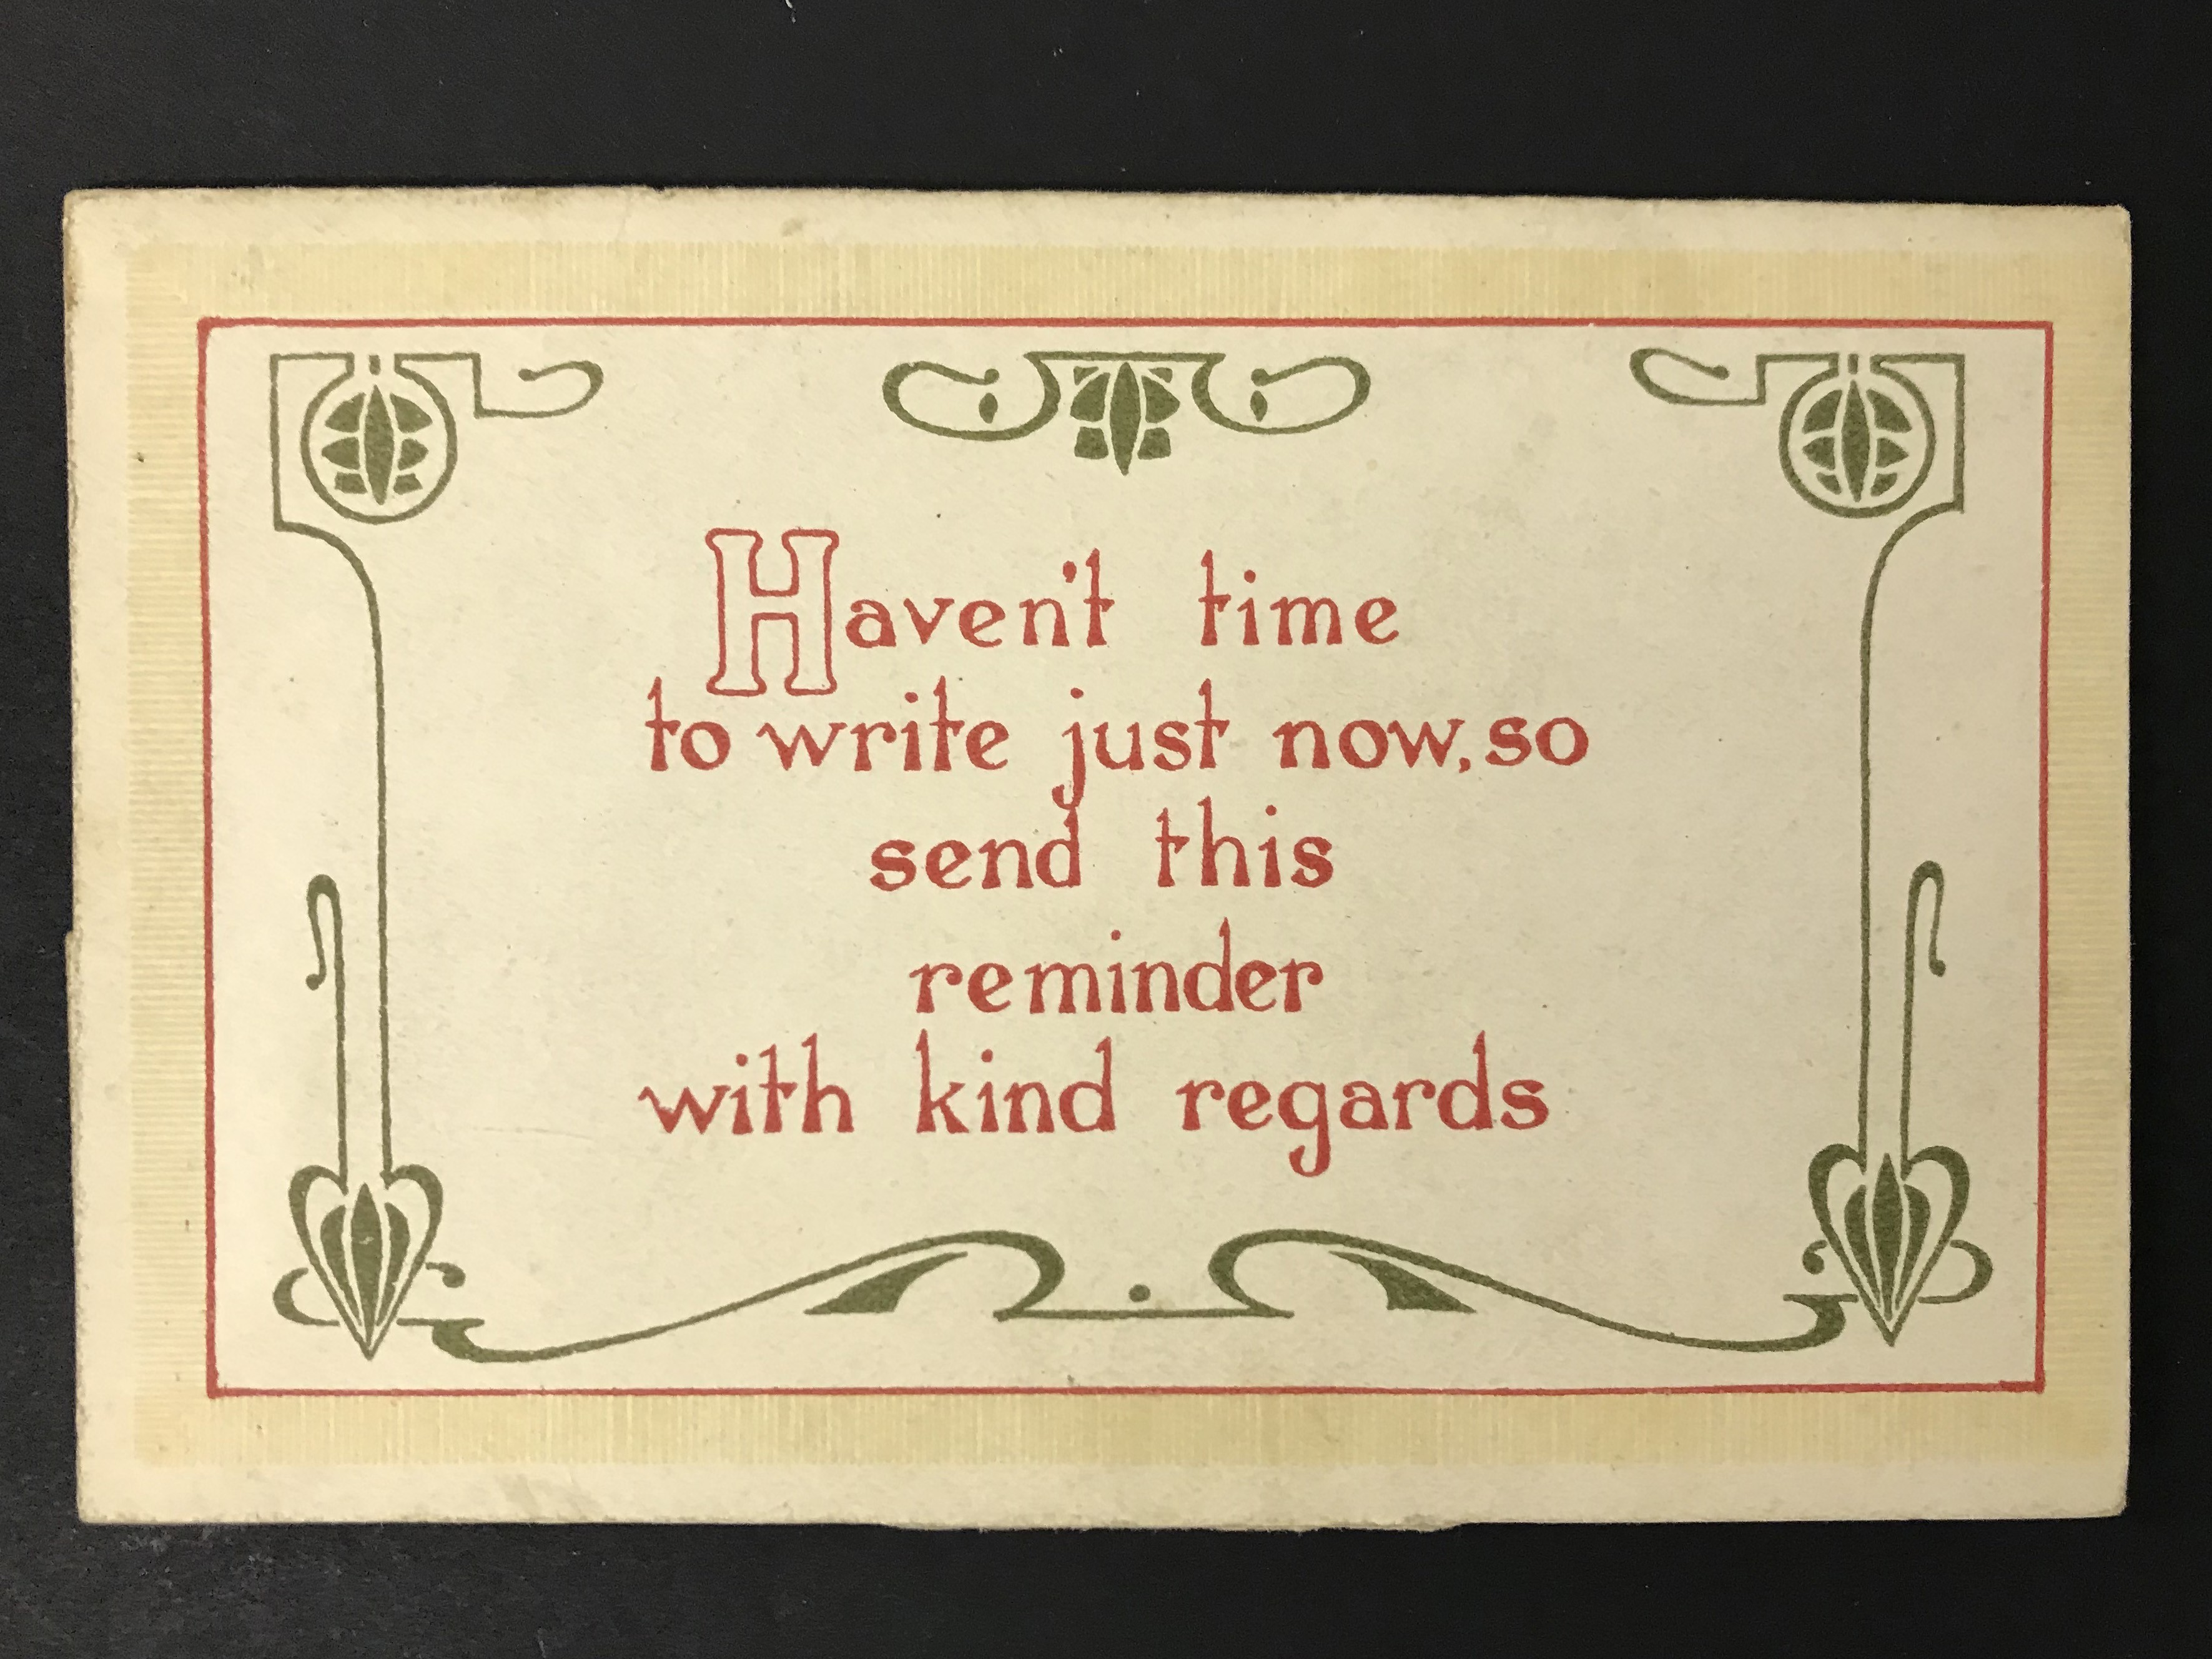 THE PICTURESQUE NOVELTY CARD IN ART NOUVEAU STYLE WITH TWELVE VIEWS